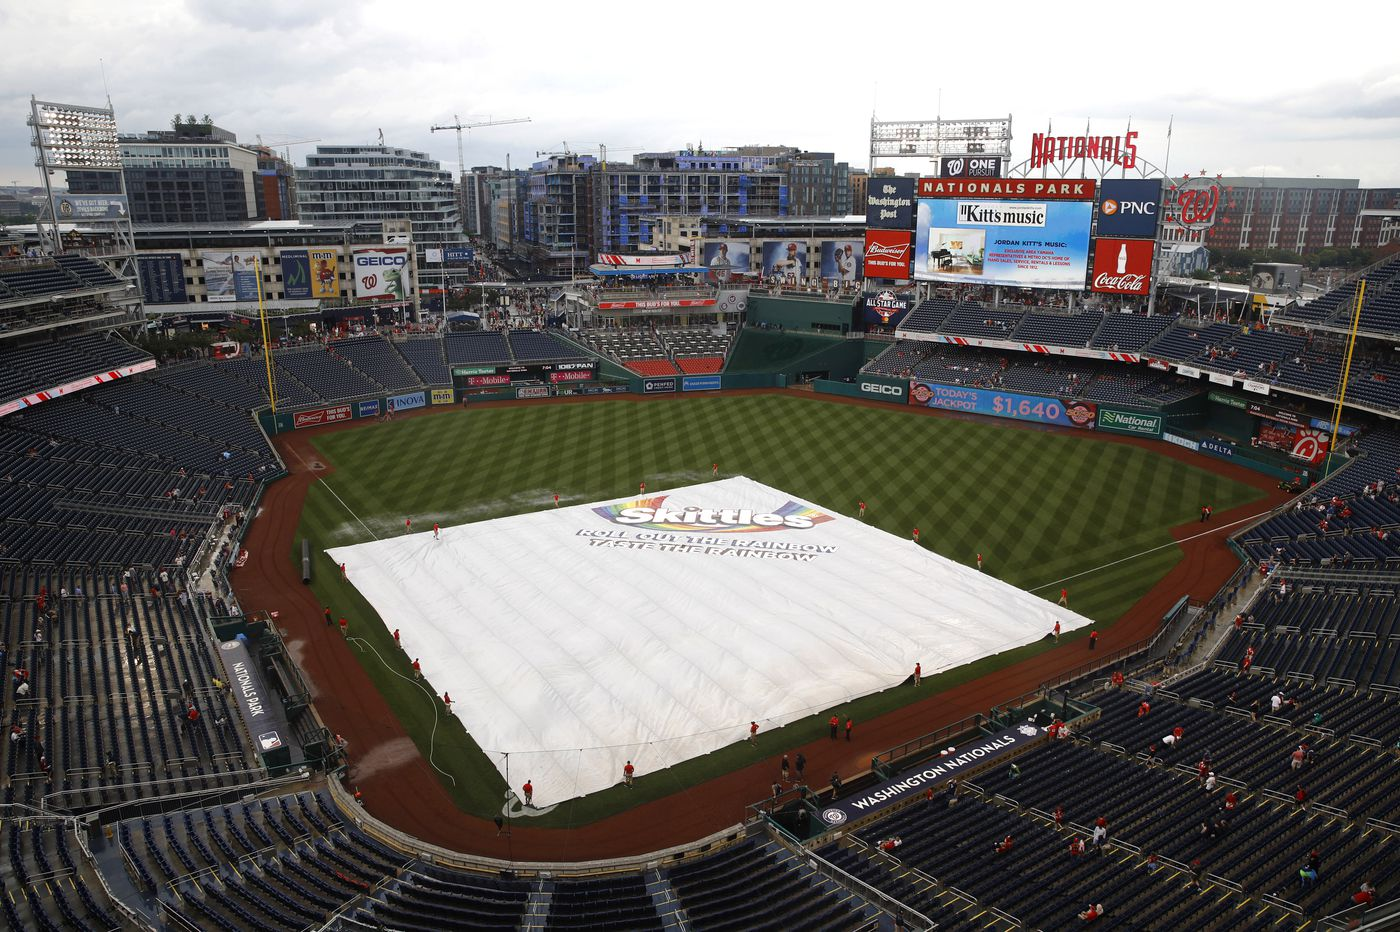 Monday's Phillies game postponed, Bryce Harper's return to D.C. put on hold